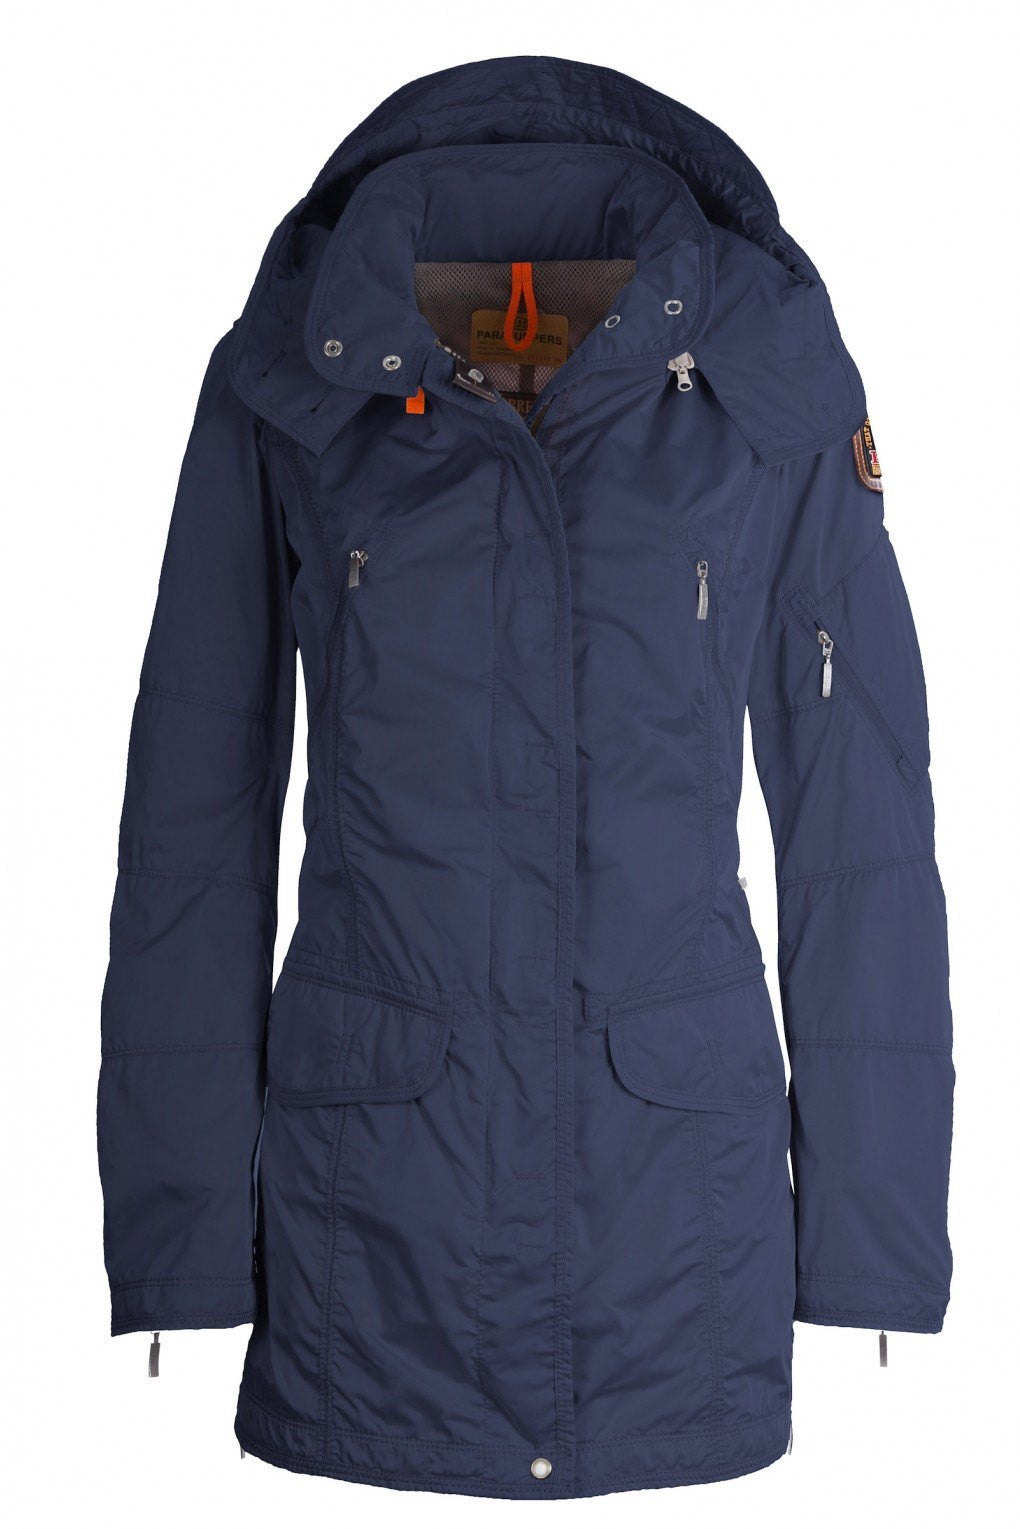 627ccbdcd115 parajumpers_20women_s_20mary_20todd_20coat_20in_20ocean.jpeg?v=1493943637